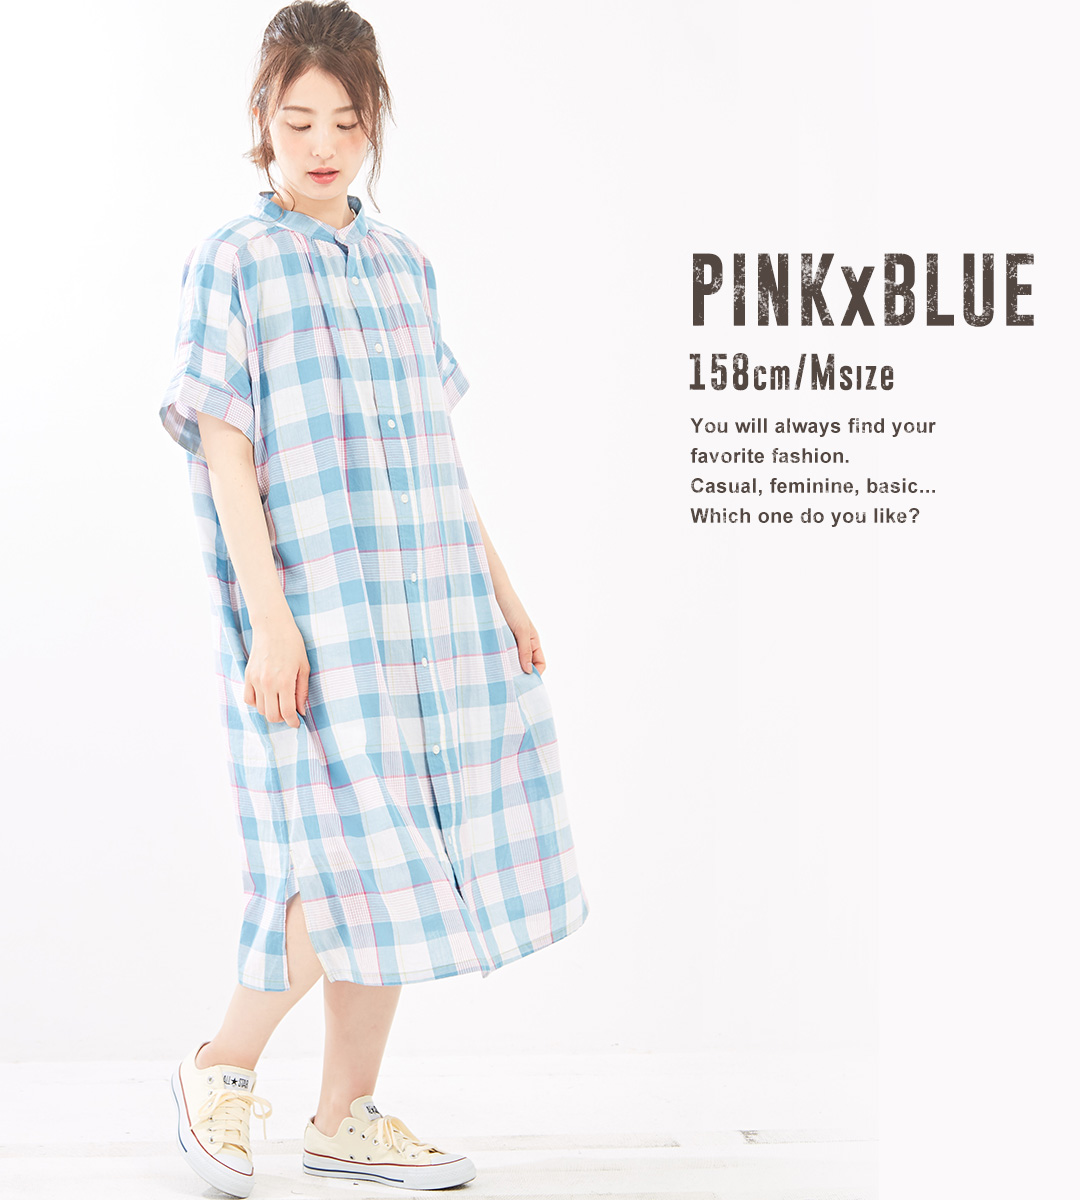 BIG SUMMER SALE shirt-dress / CUBE SUGAR boiling dyeing French sleeve dress  (three colors): Lady's dress button difference band collar short sleeves